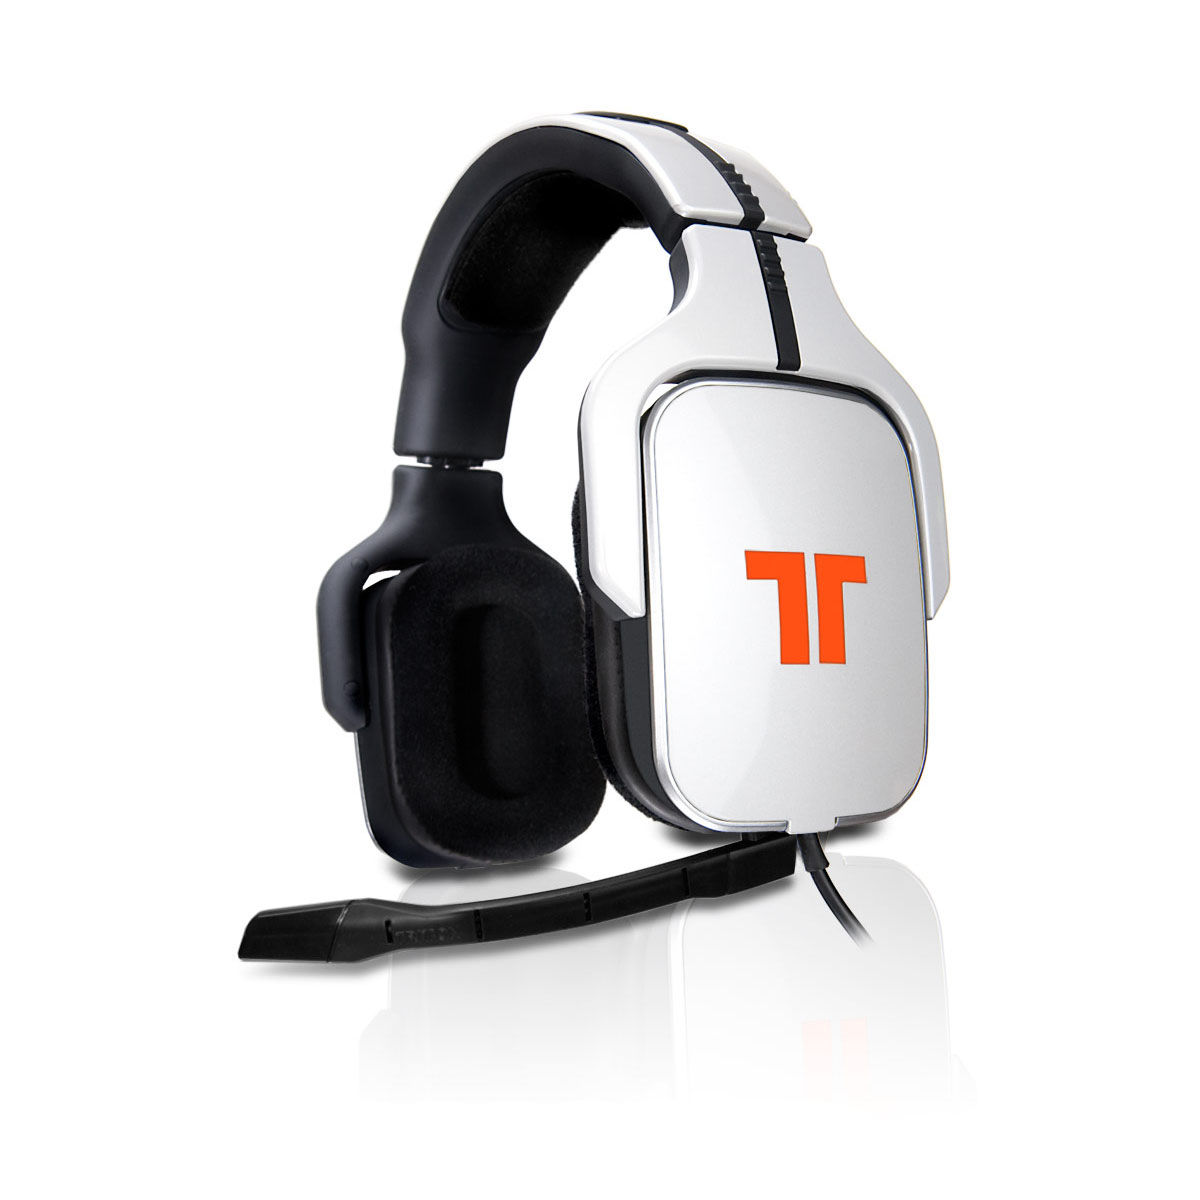 tritton ax 720 pc mac ps3 xbox 360 ax720 achat vente micro casque gamer sur. Black Bedroom Furniture Sets. Home Design Ideas